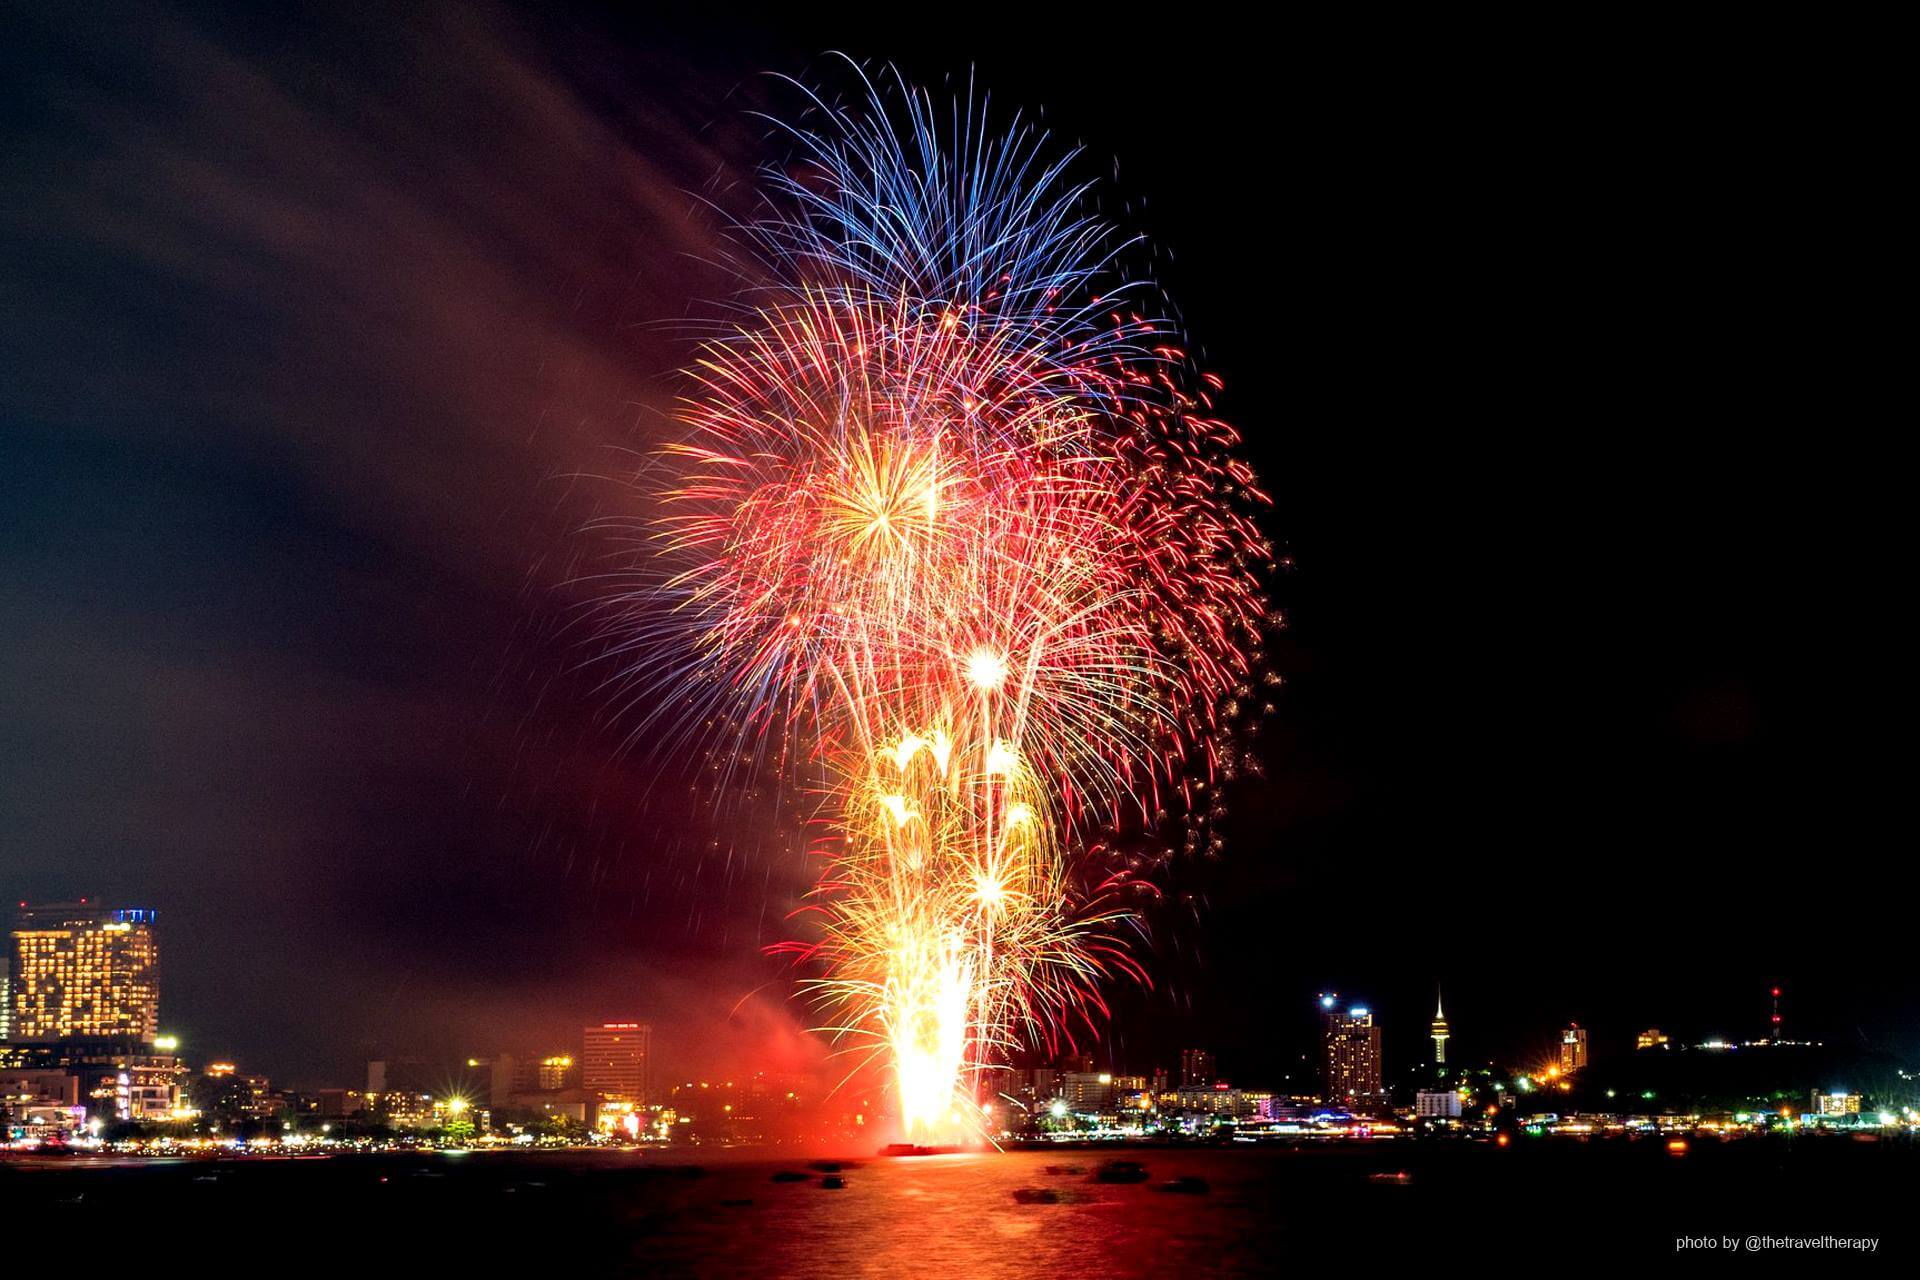 DUSIT THANI PATTAYA: New Year's Eve Countdown Party 2018/2019